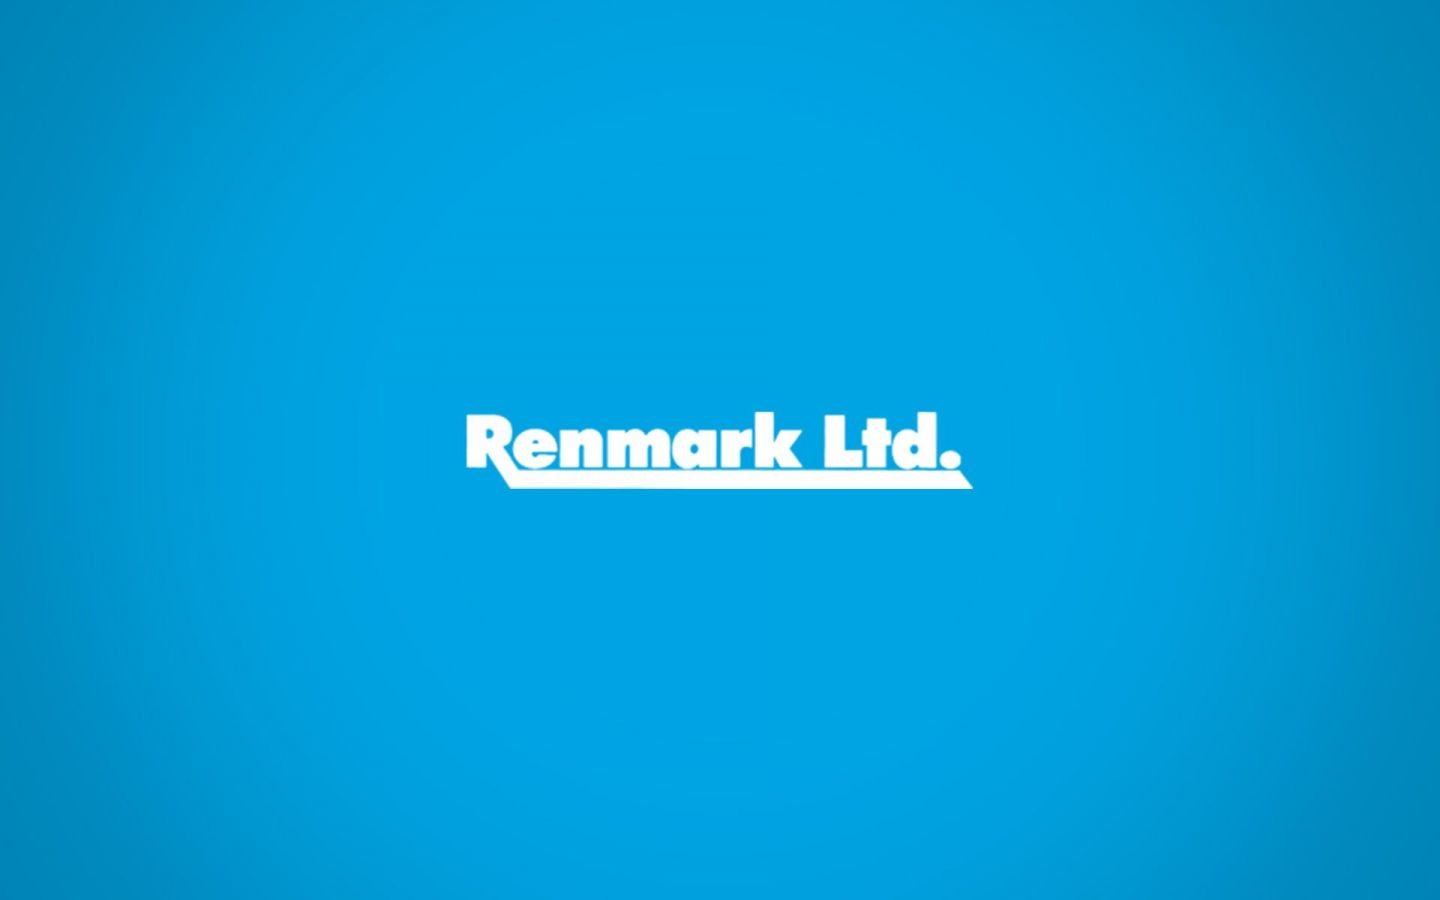 Renmark Ltd. Branding Project by Crevisio